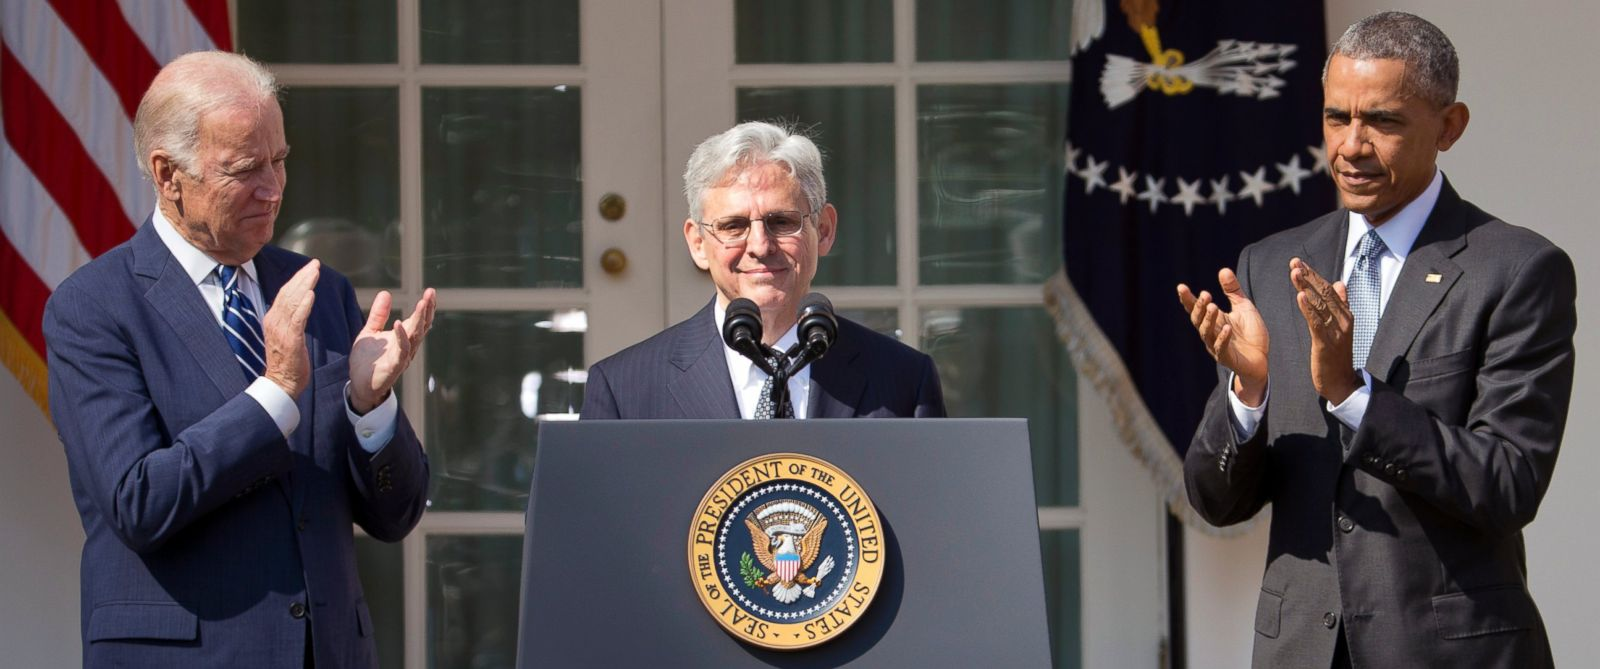 PHOTO: Federal appeals court judge Merrick Garland, receives applauds from President Barack Obama and Vice President Joe Biden as he is introduced as Obamas nominee for the Supreme Court, March 16, 2016.